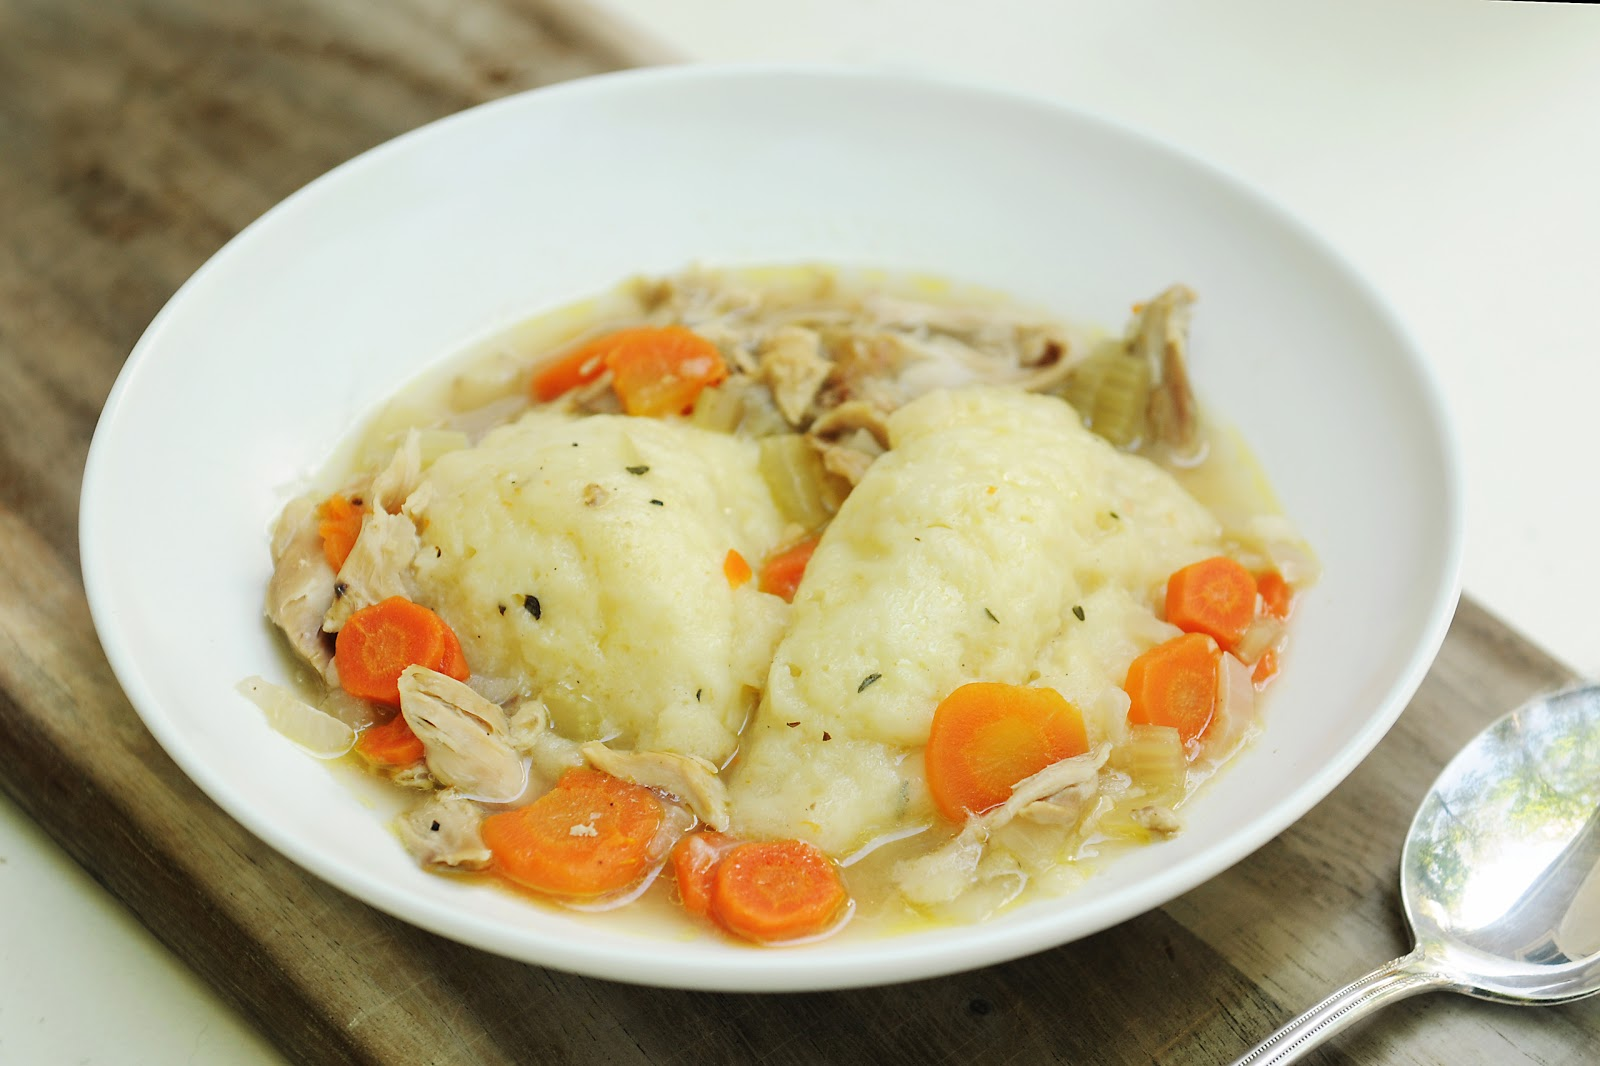 157. Chicken and Dumplings